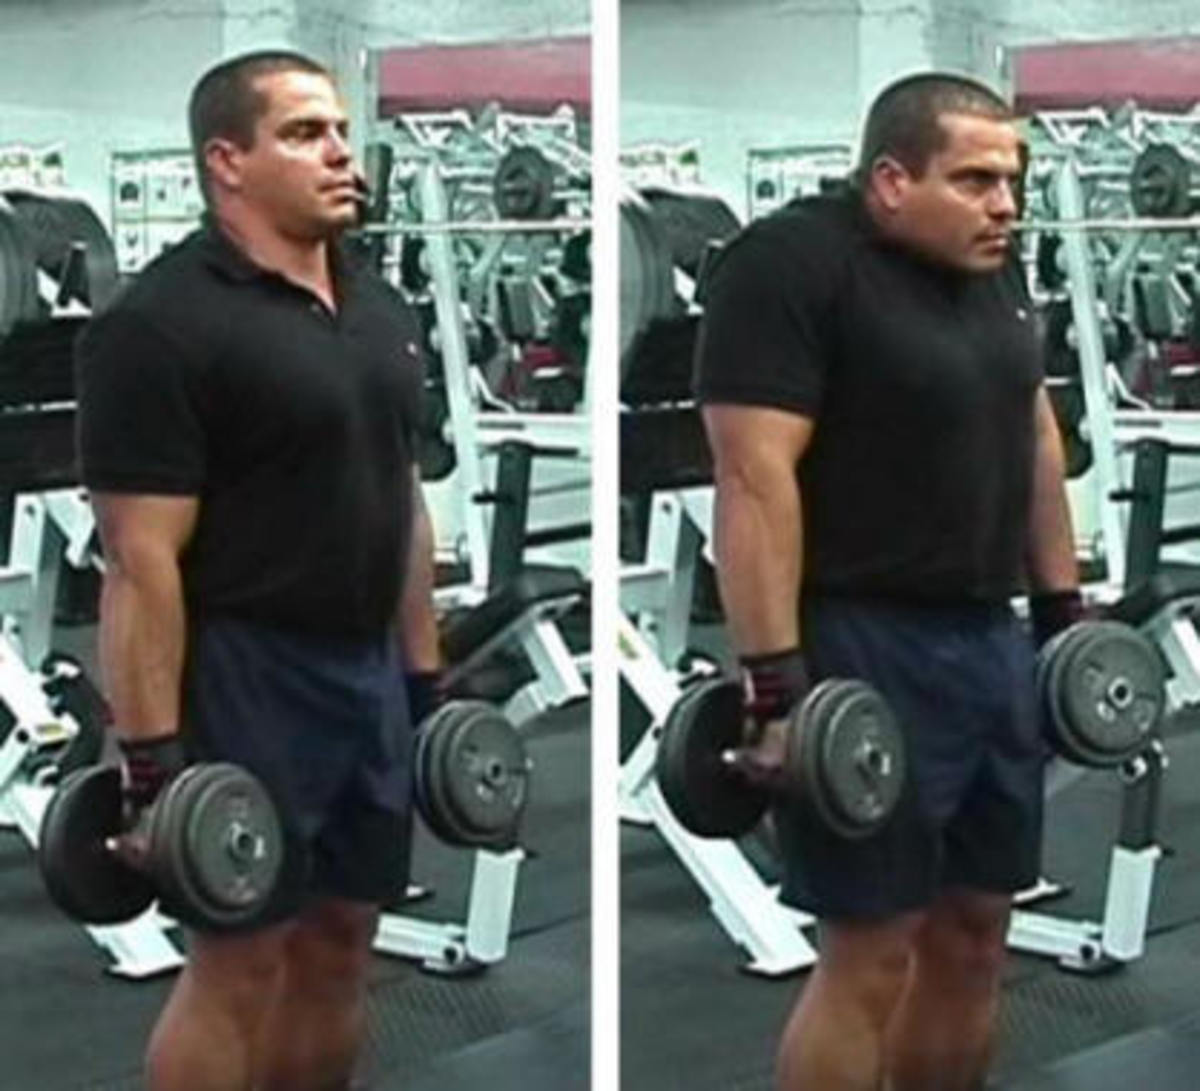 Dumbbell shrug. Hold shrug for at least a second 2.